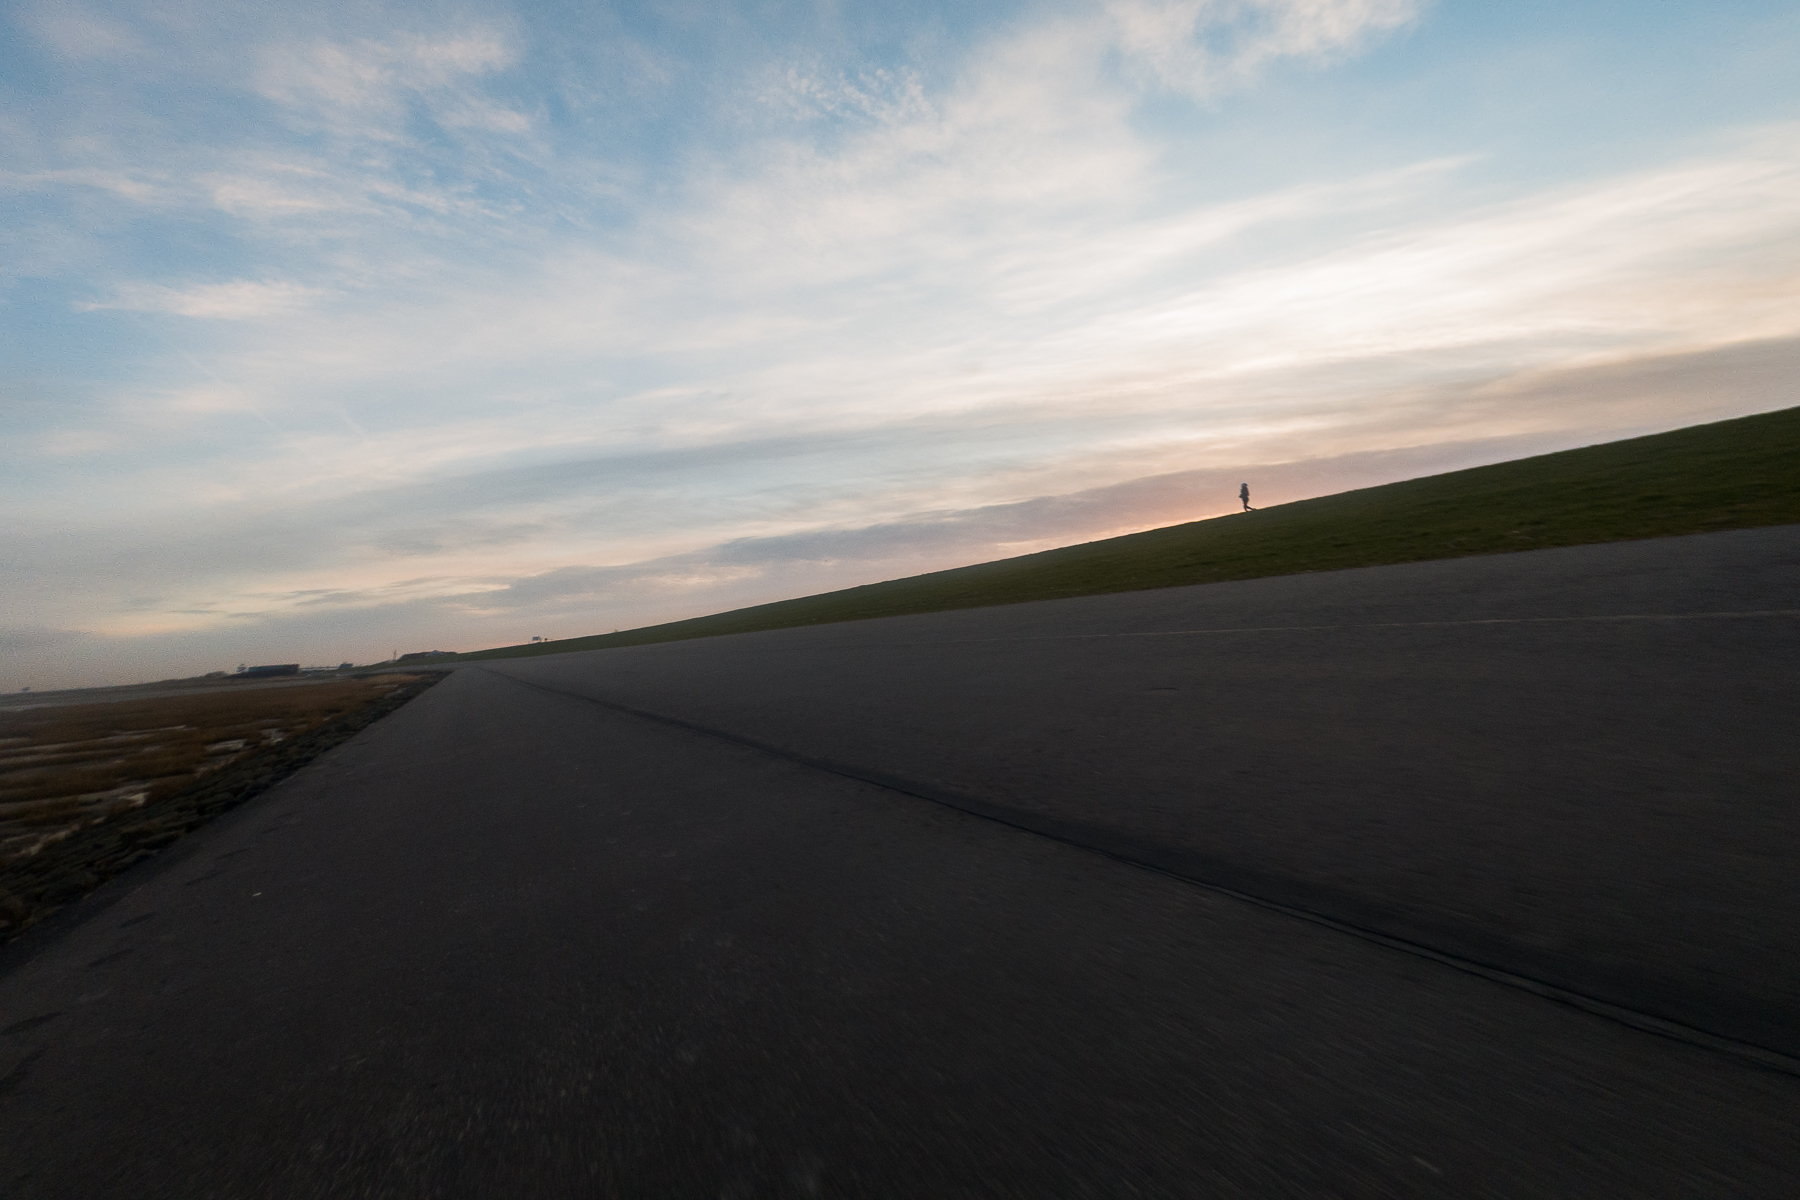 A calmer morning a few kilometers west, with the Wadden Sea to the left and a fellow runner on the levee to the right. Norddeich, Germany, March 8, 2020.